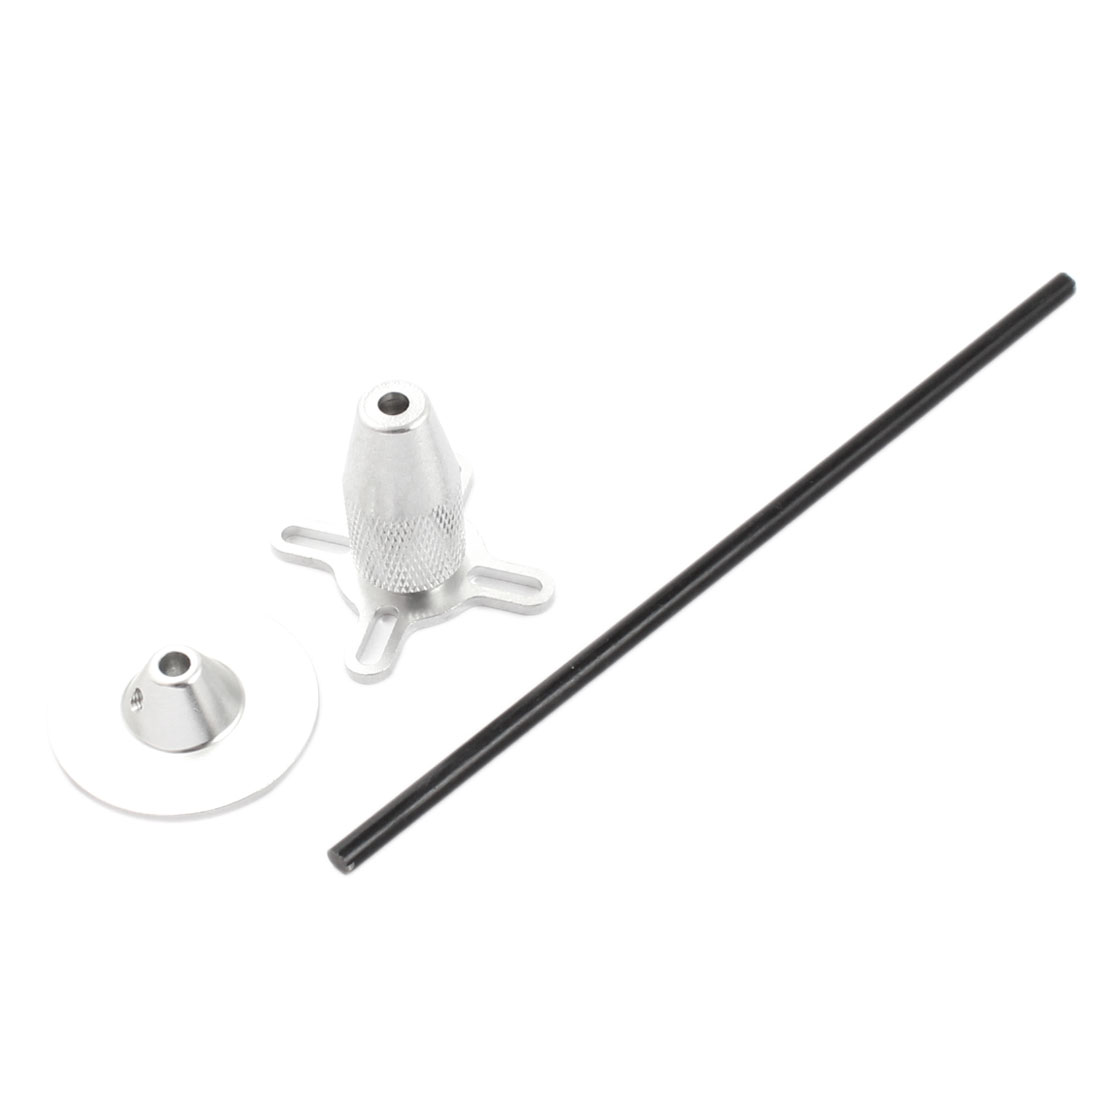 4mm Silver Tone Aluminum Alloy RC Multi-rotor GPS Foldable Antenna Holder Bracket Mount Fitting Base Set